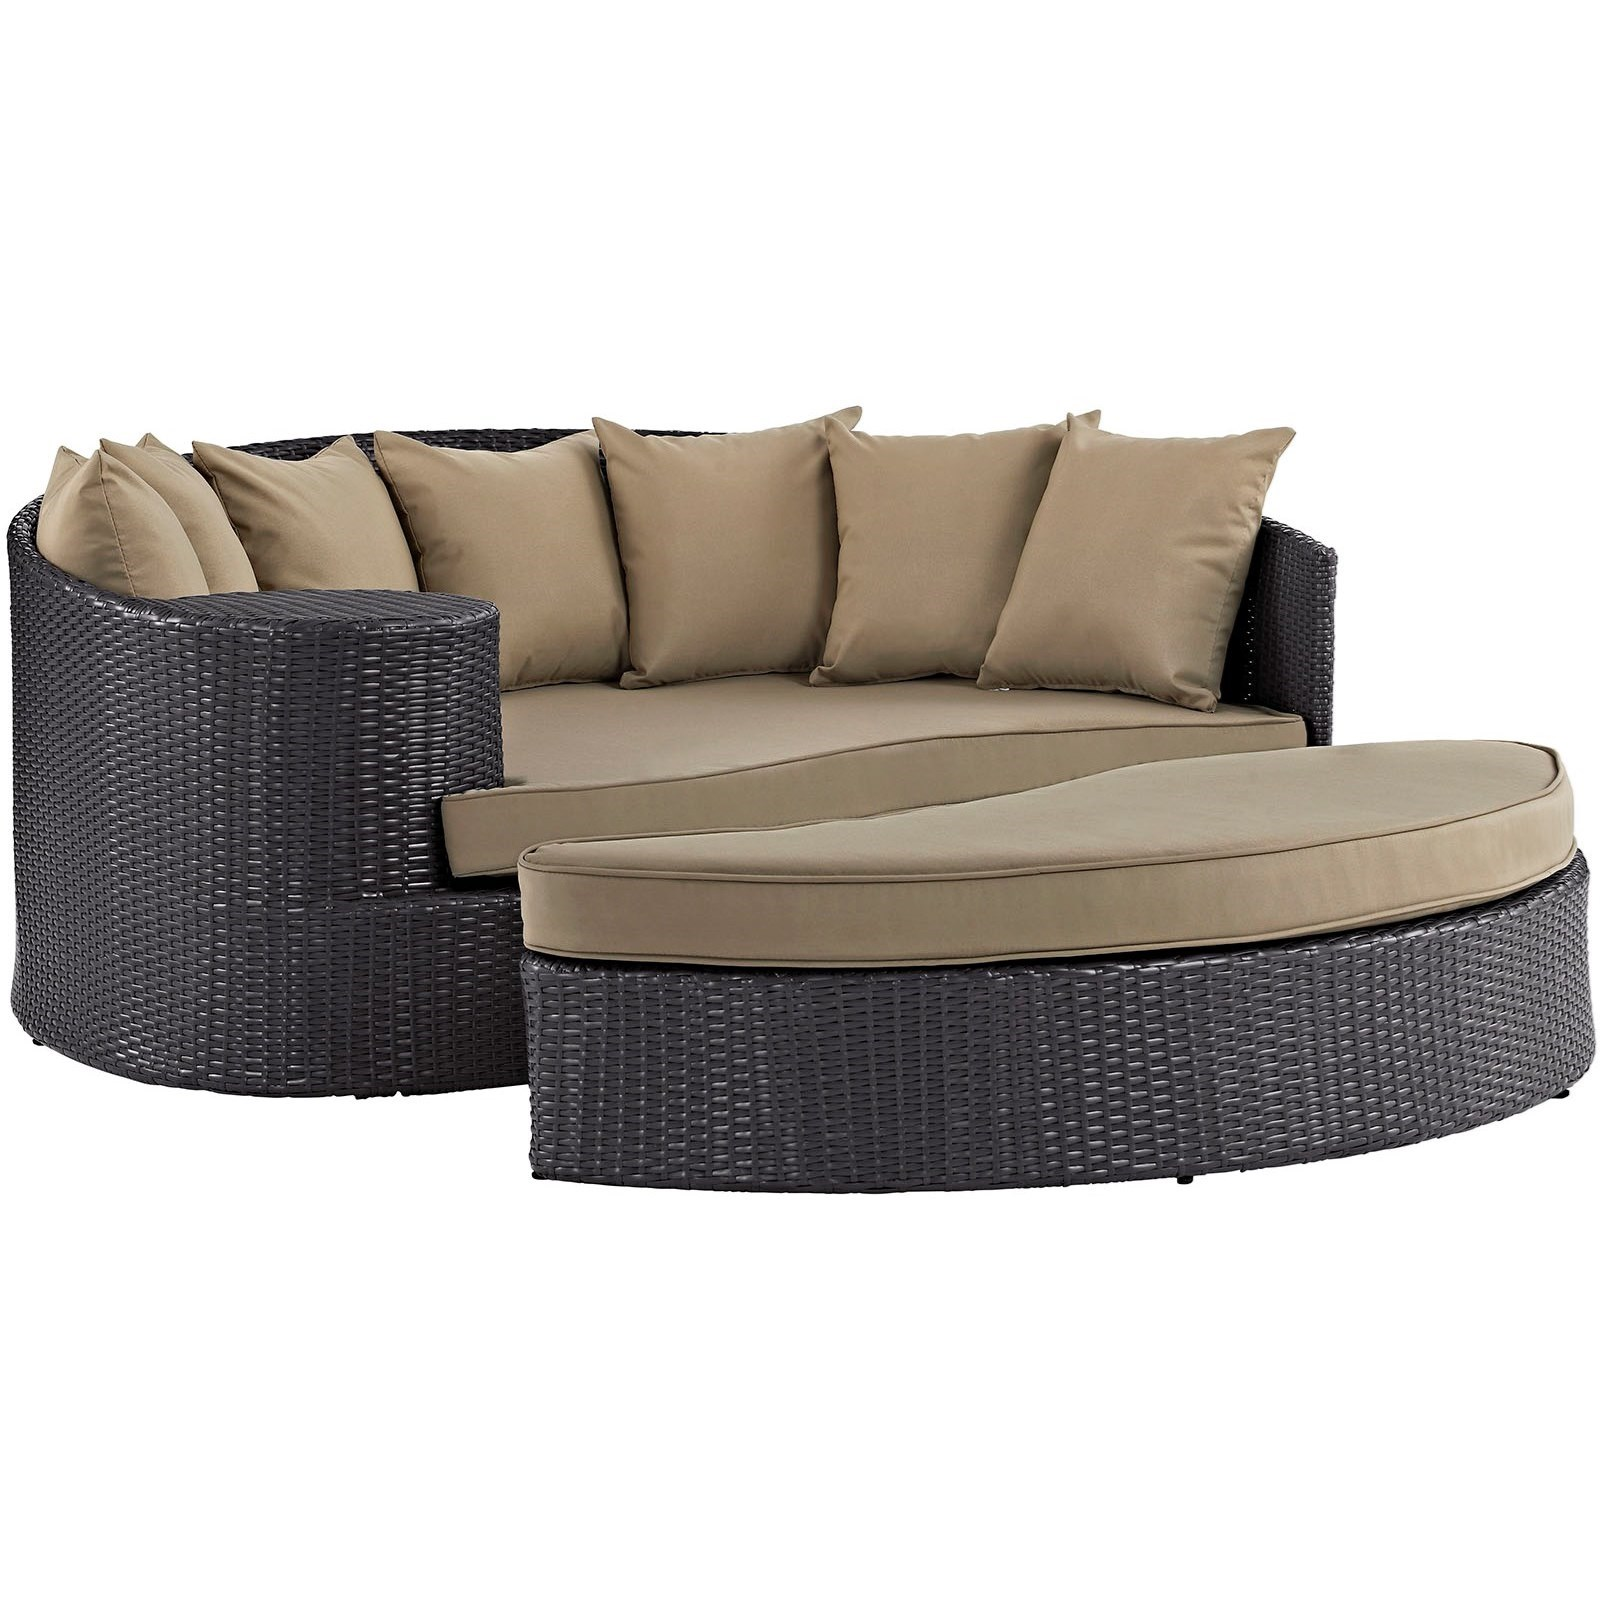 Convene Outdoor Patio Daybed by Modway at Value City Furniture